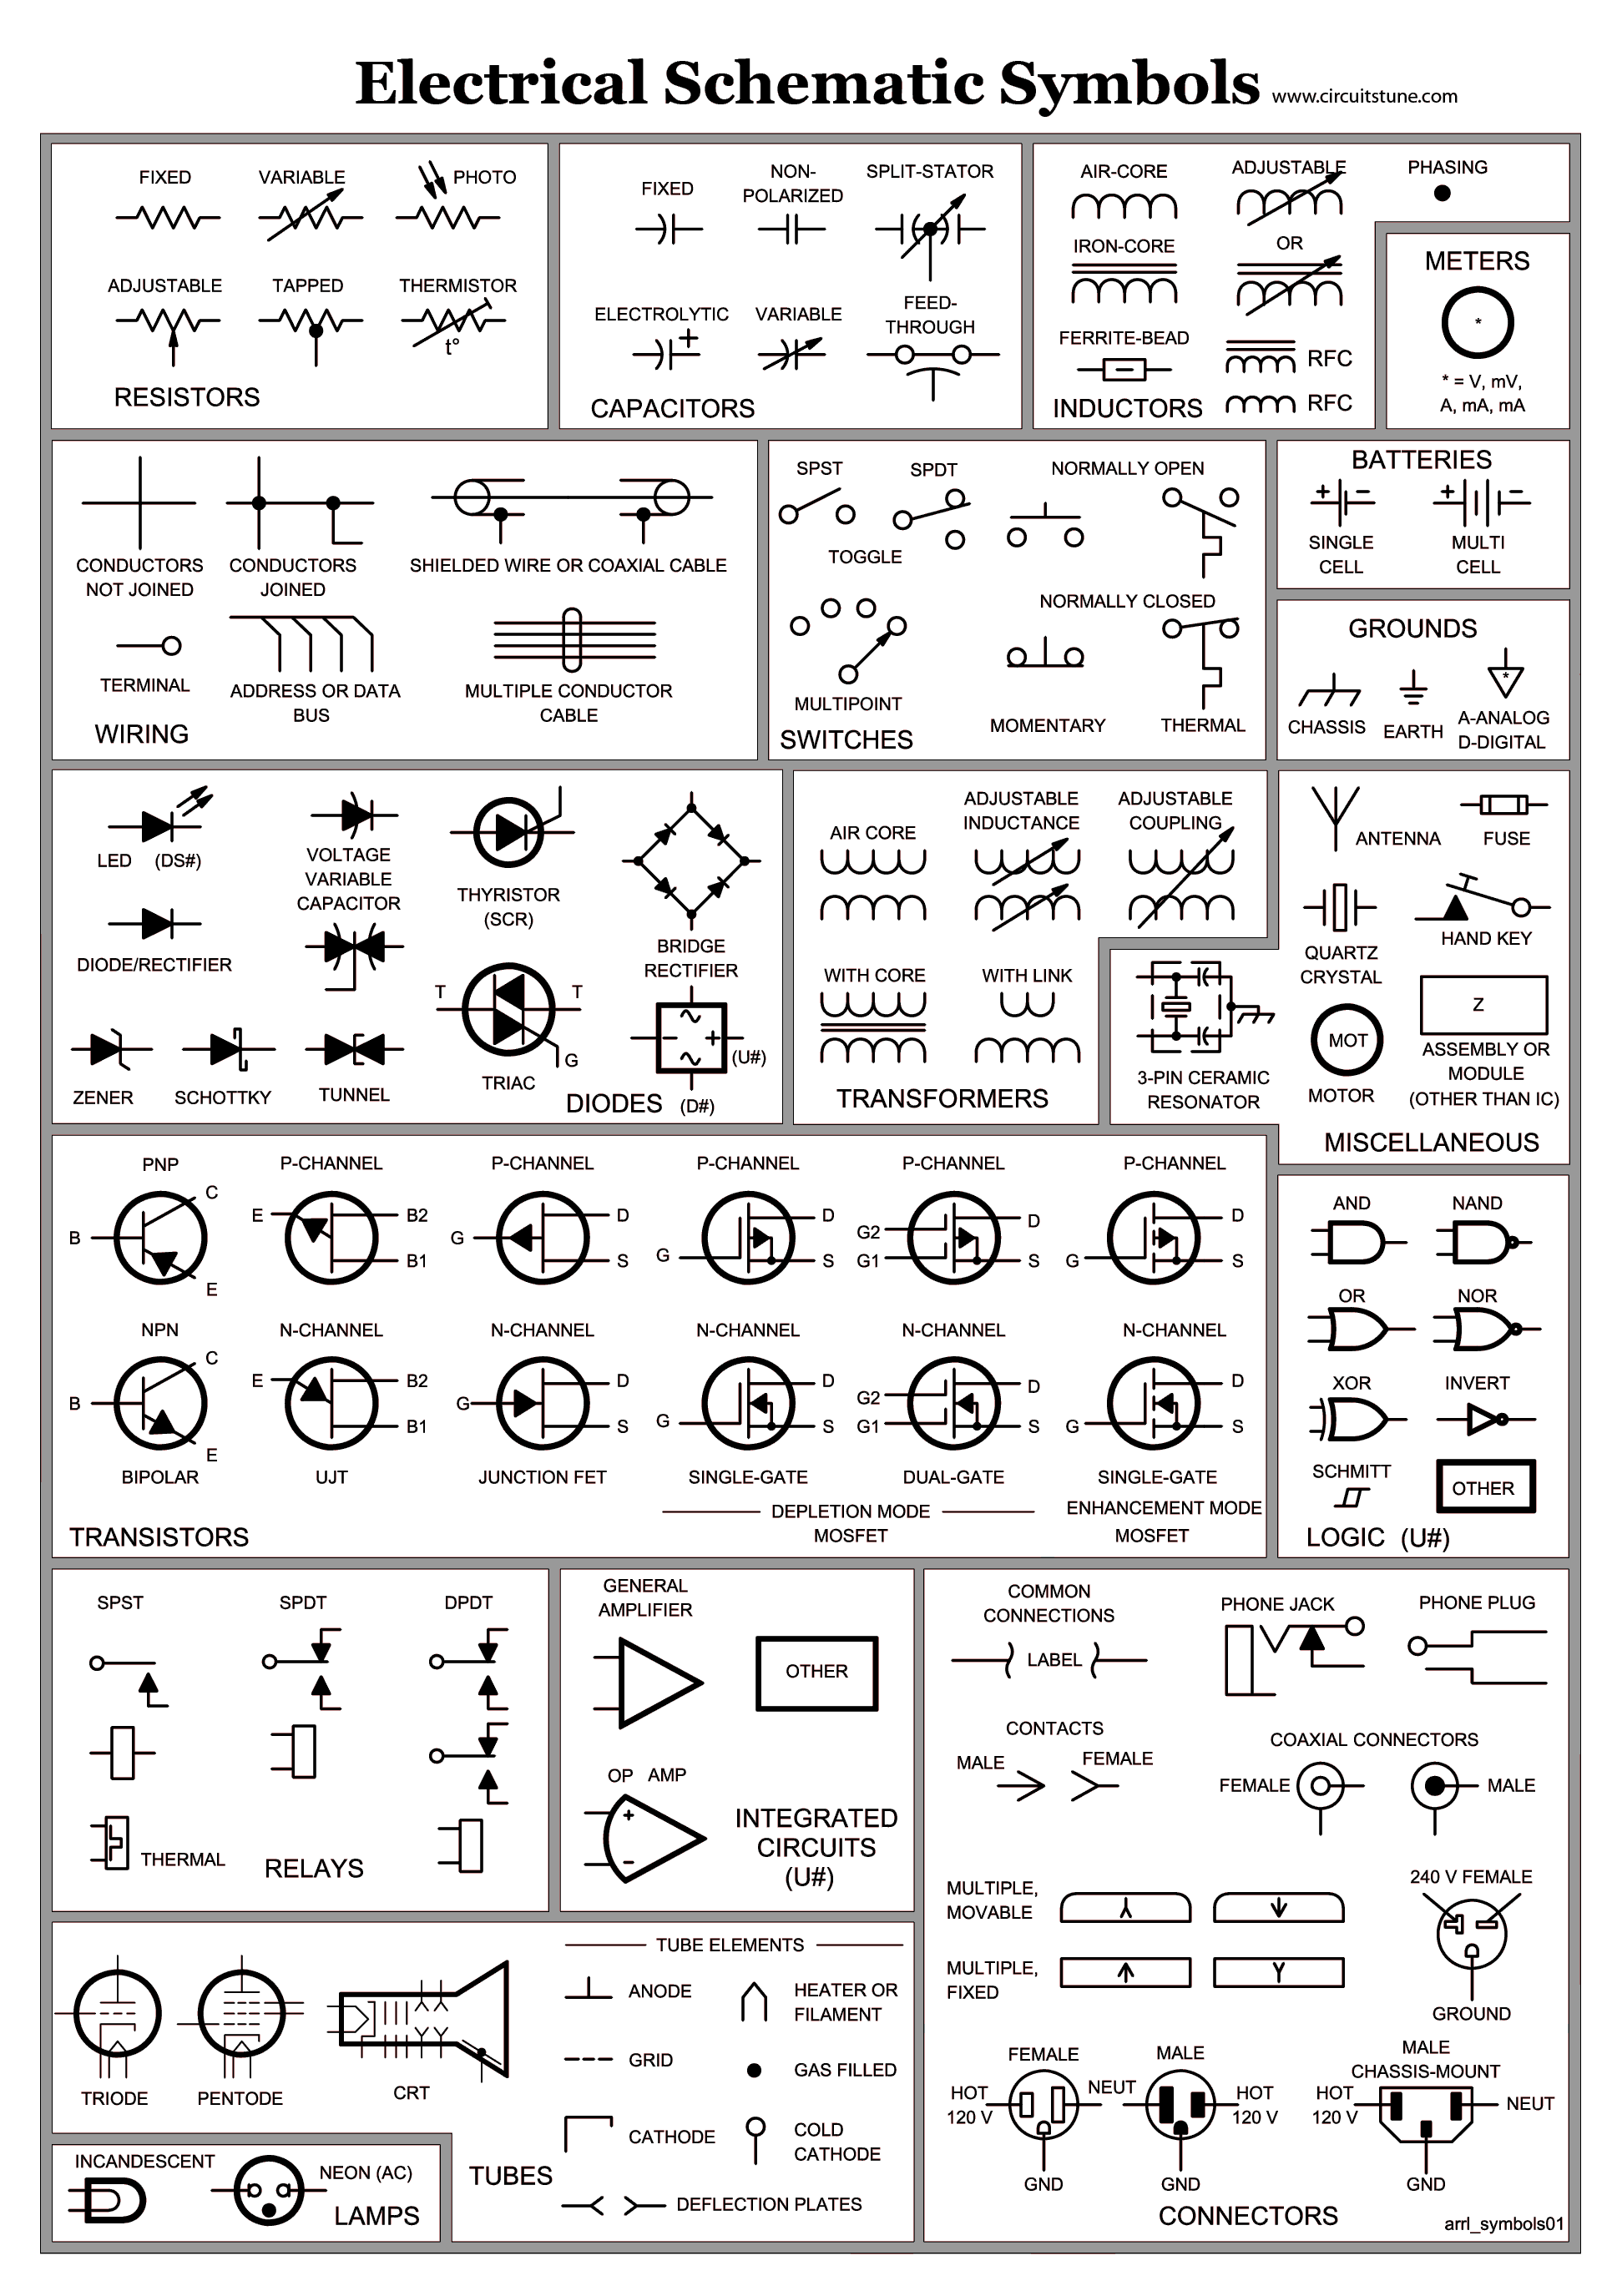 electrical schematic symbols wire diagram symbols automotive wiring rh pinterest com All Circuit Symbols Simple Circuit Symbols